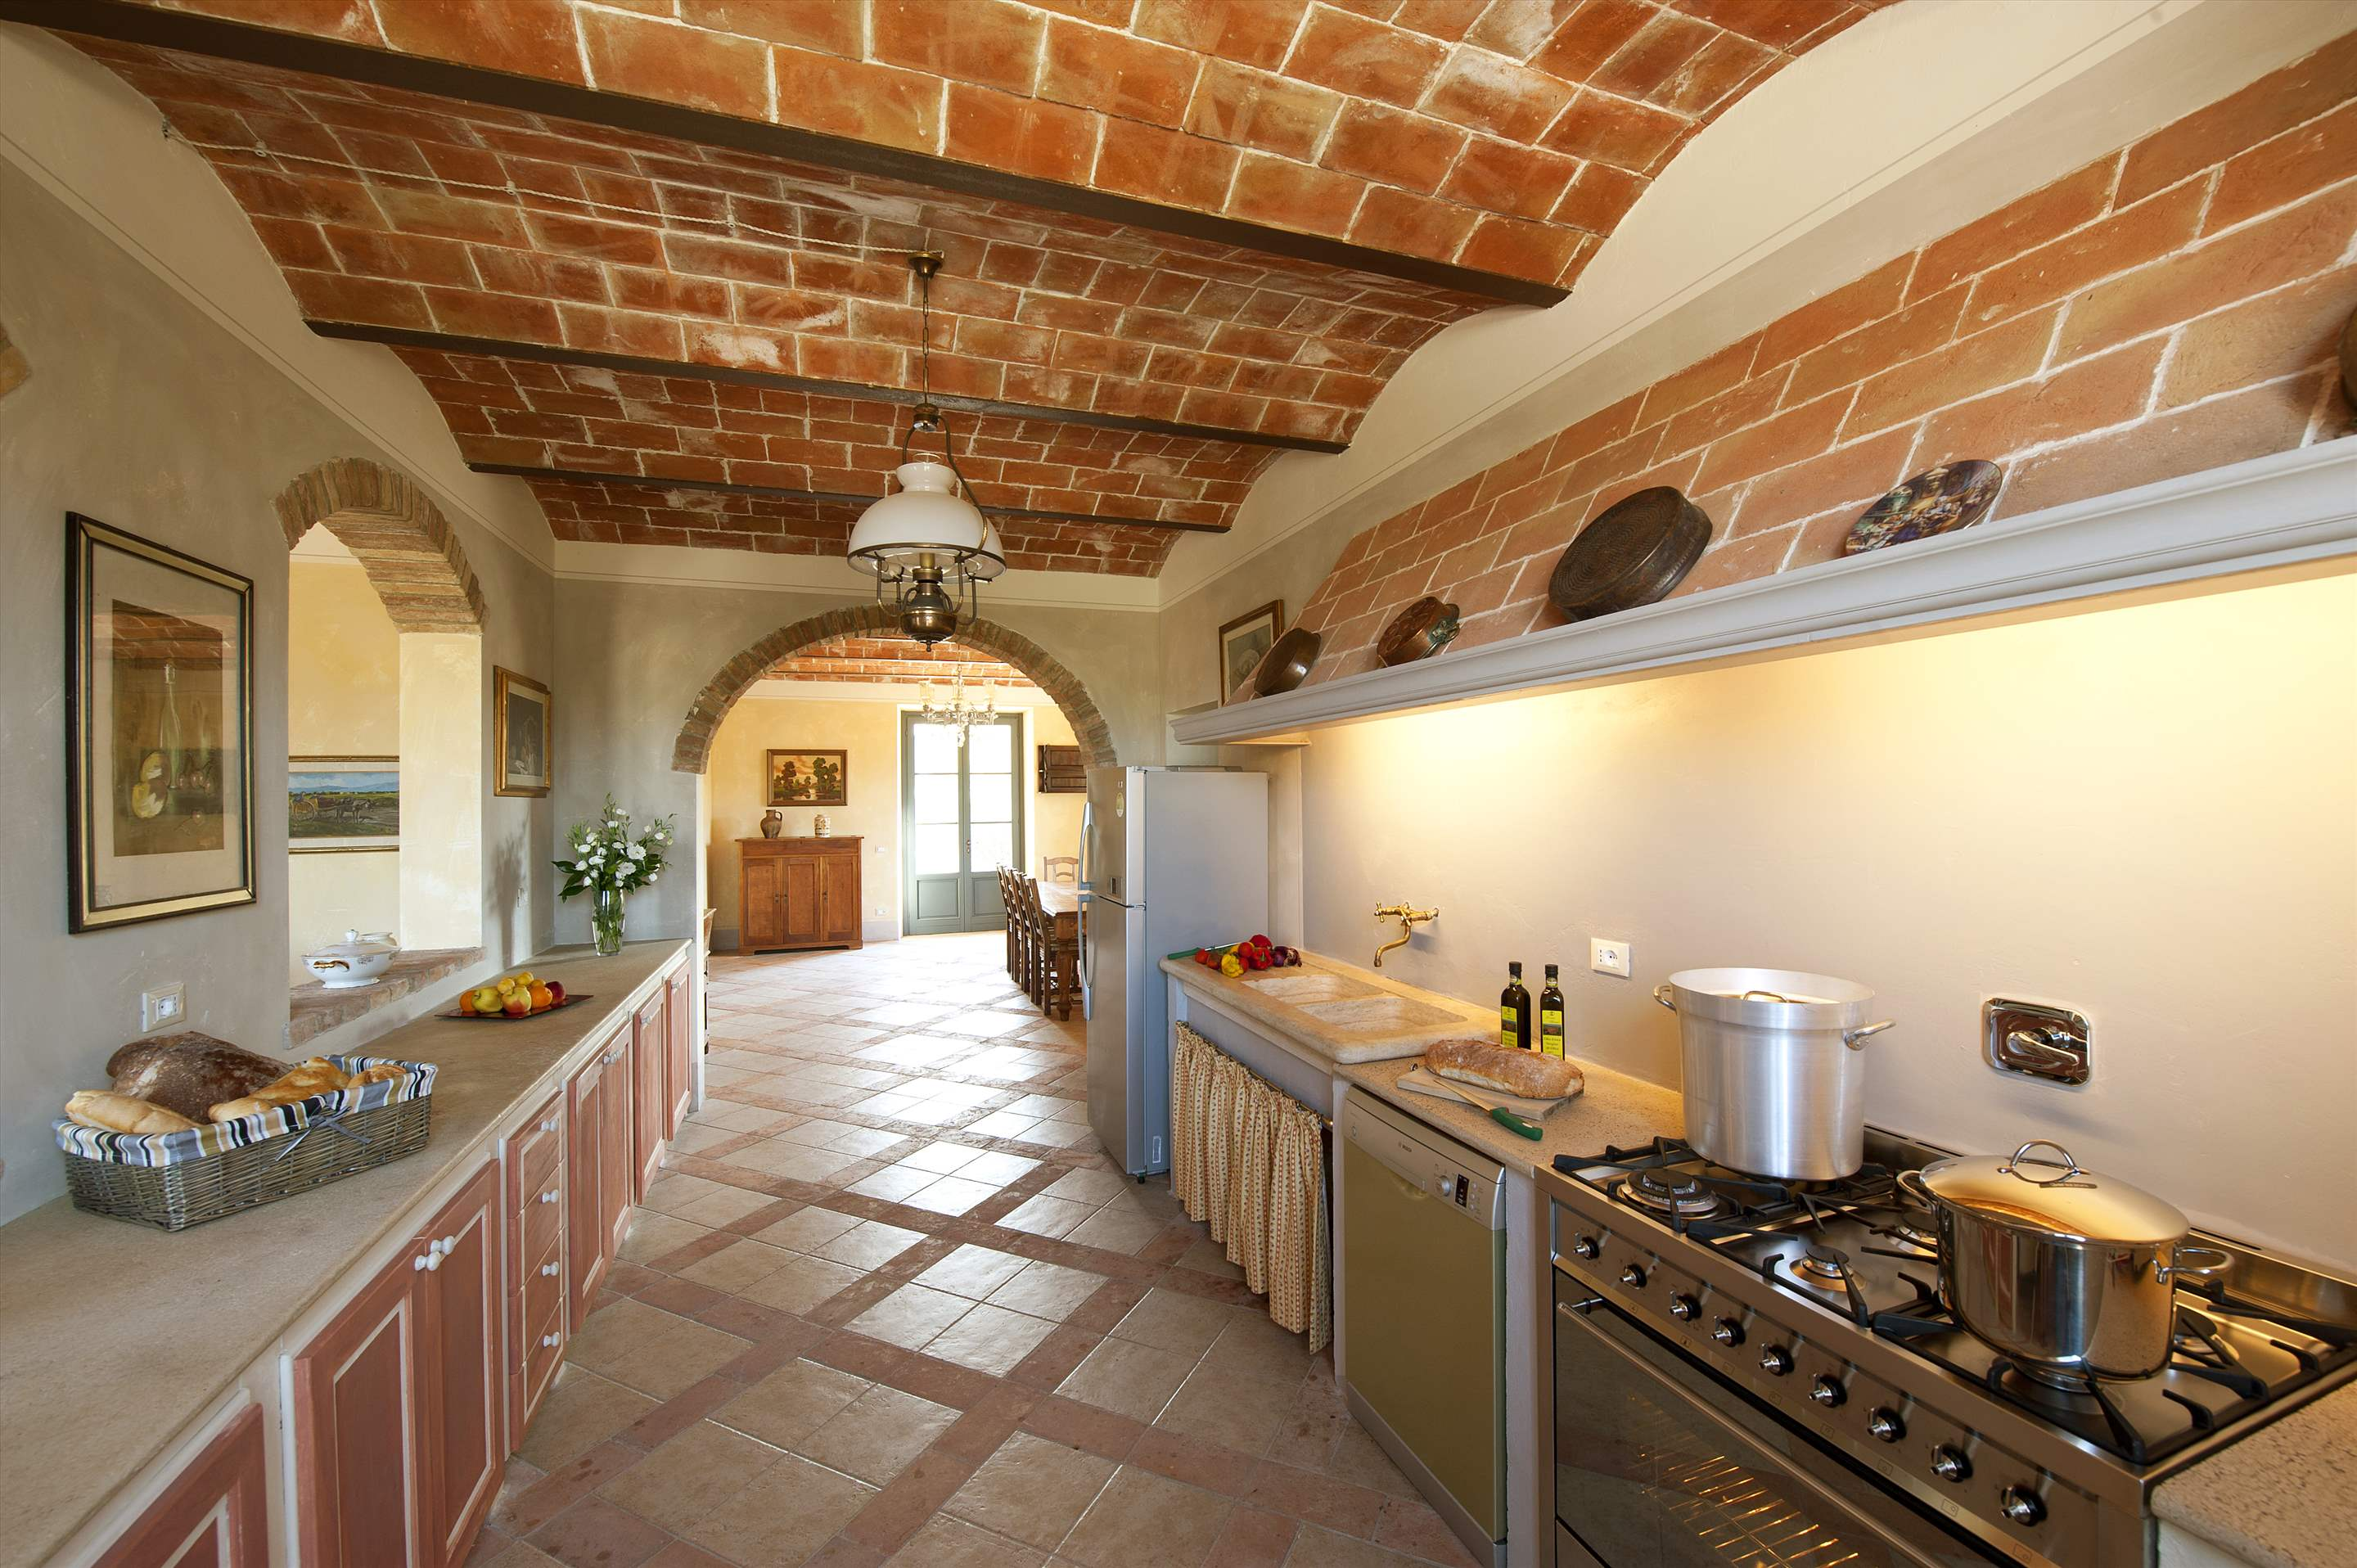 Podere Di Collina, Villa & Apts, 8 bedroom villa in Tuscany Coast, Tuscany Photo #8